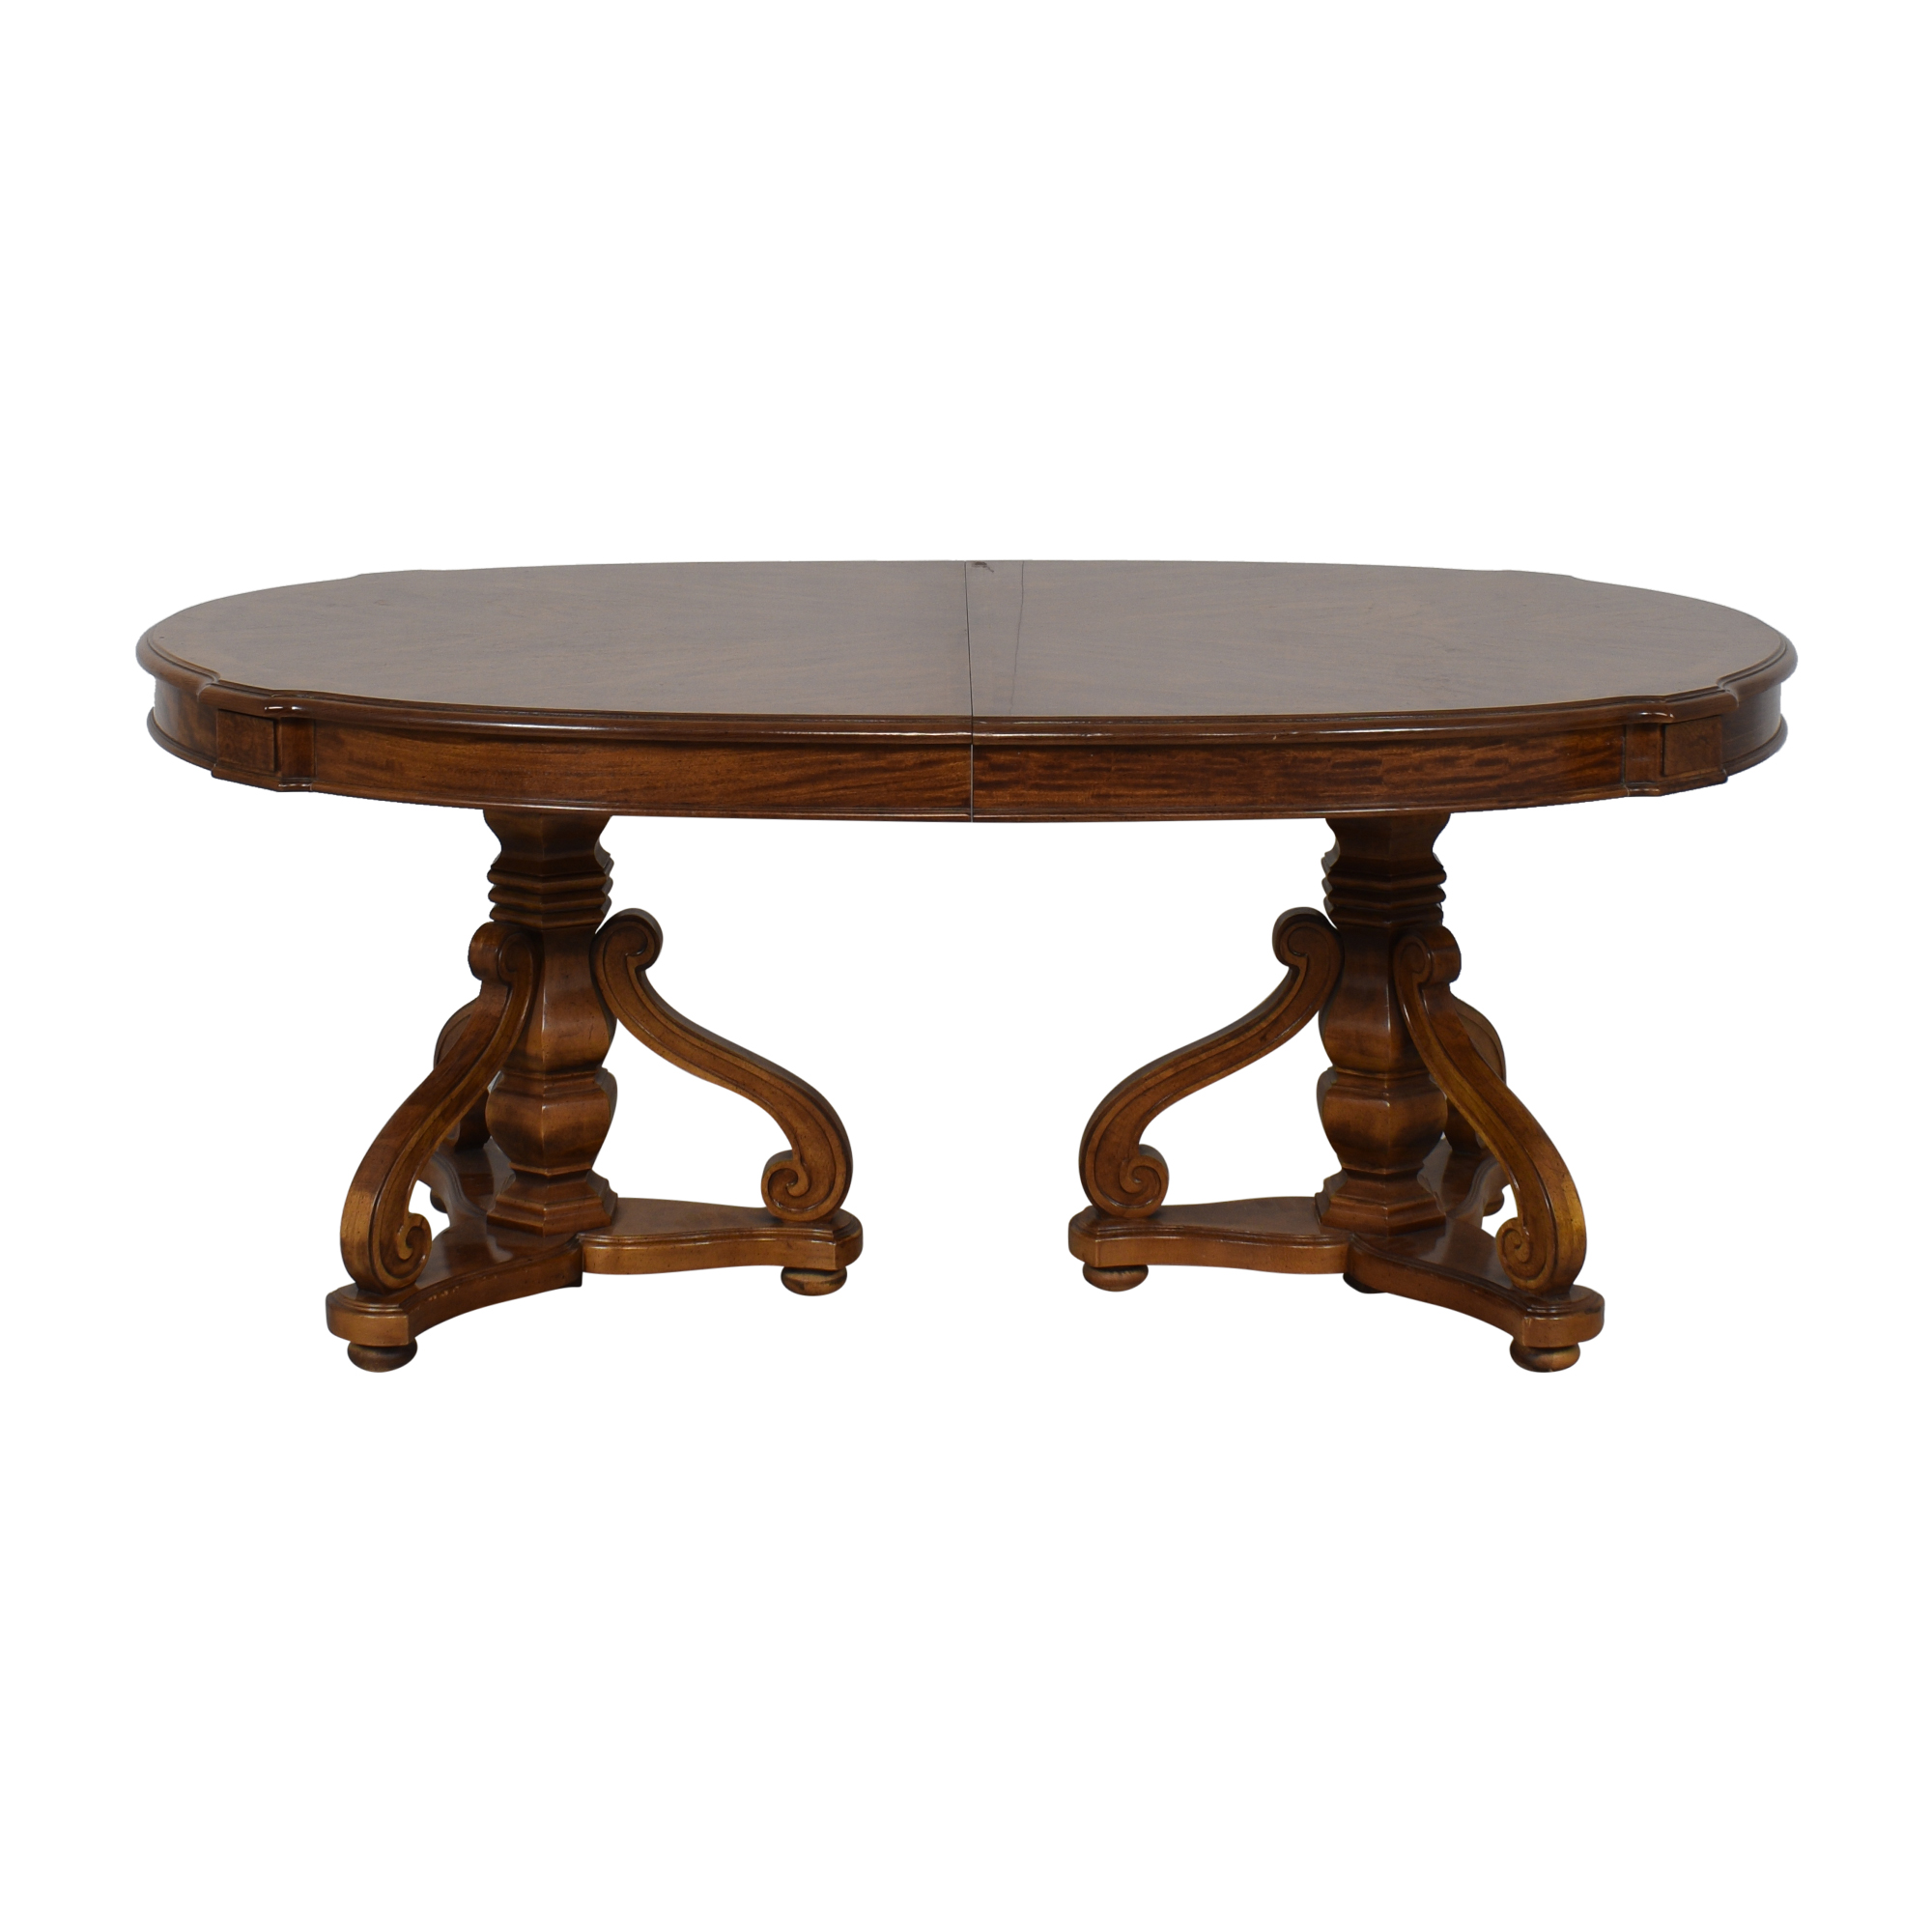 Thomasville Thomasville Extension Dining Table price